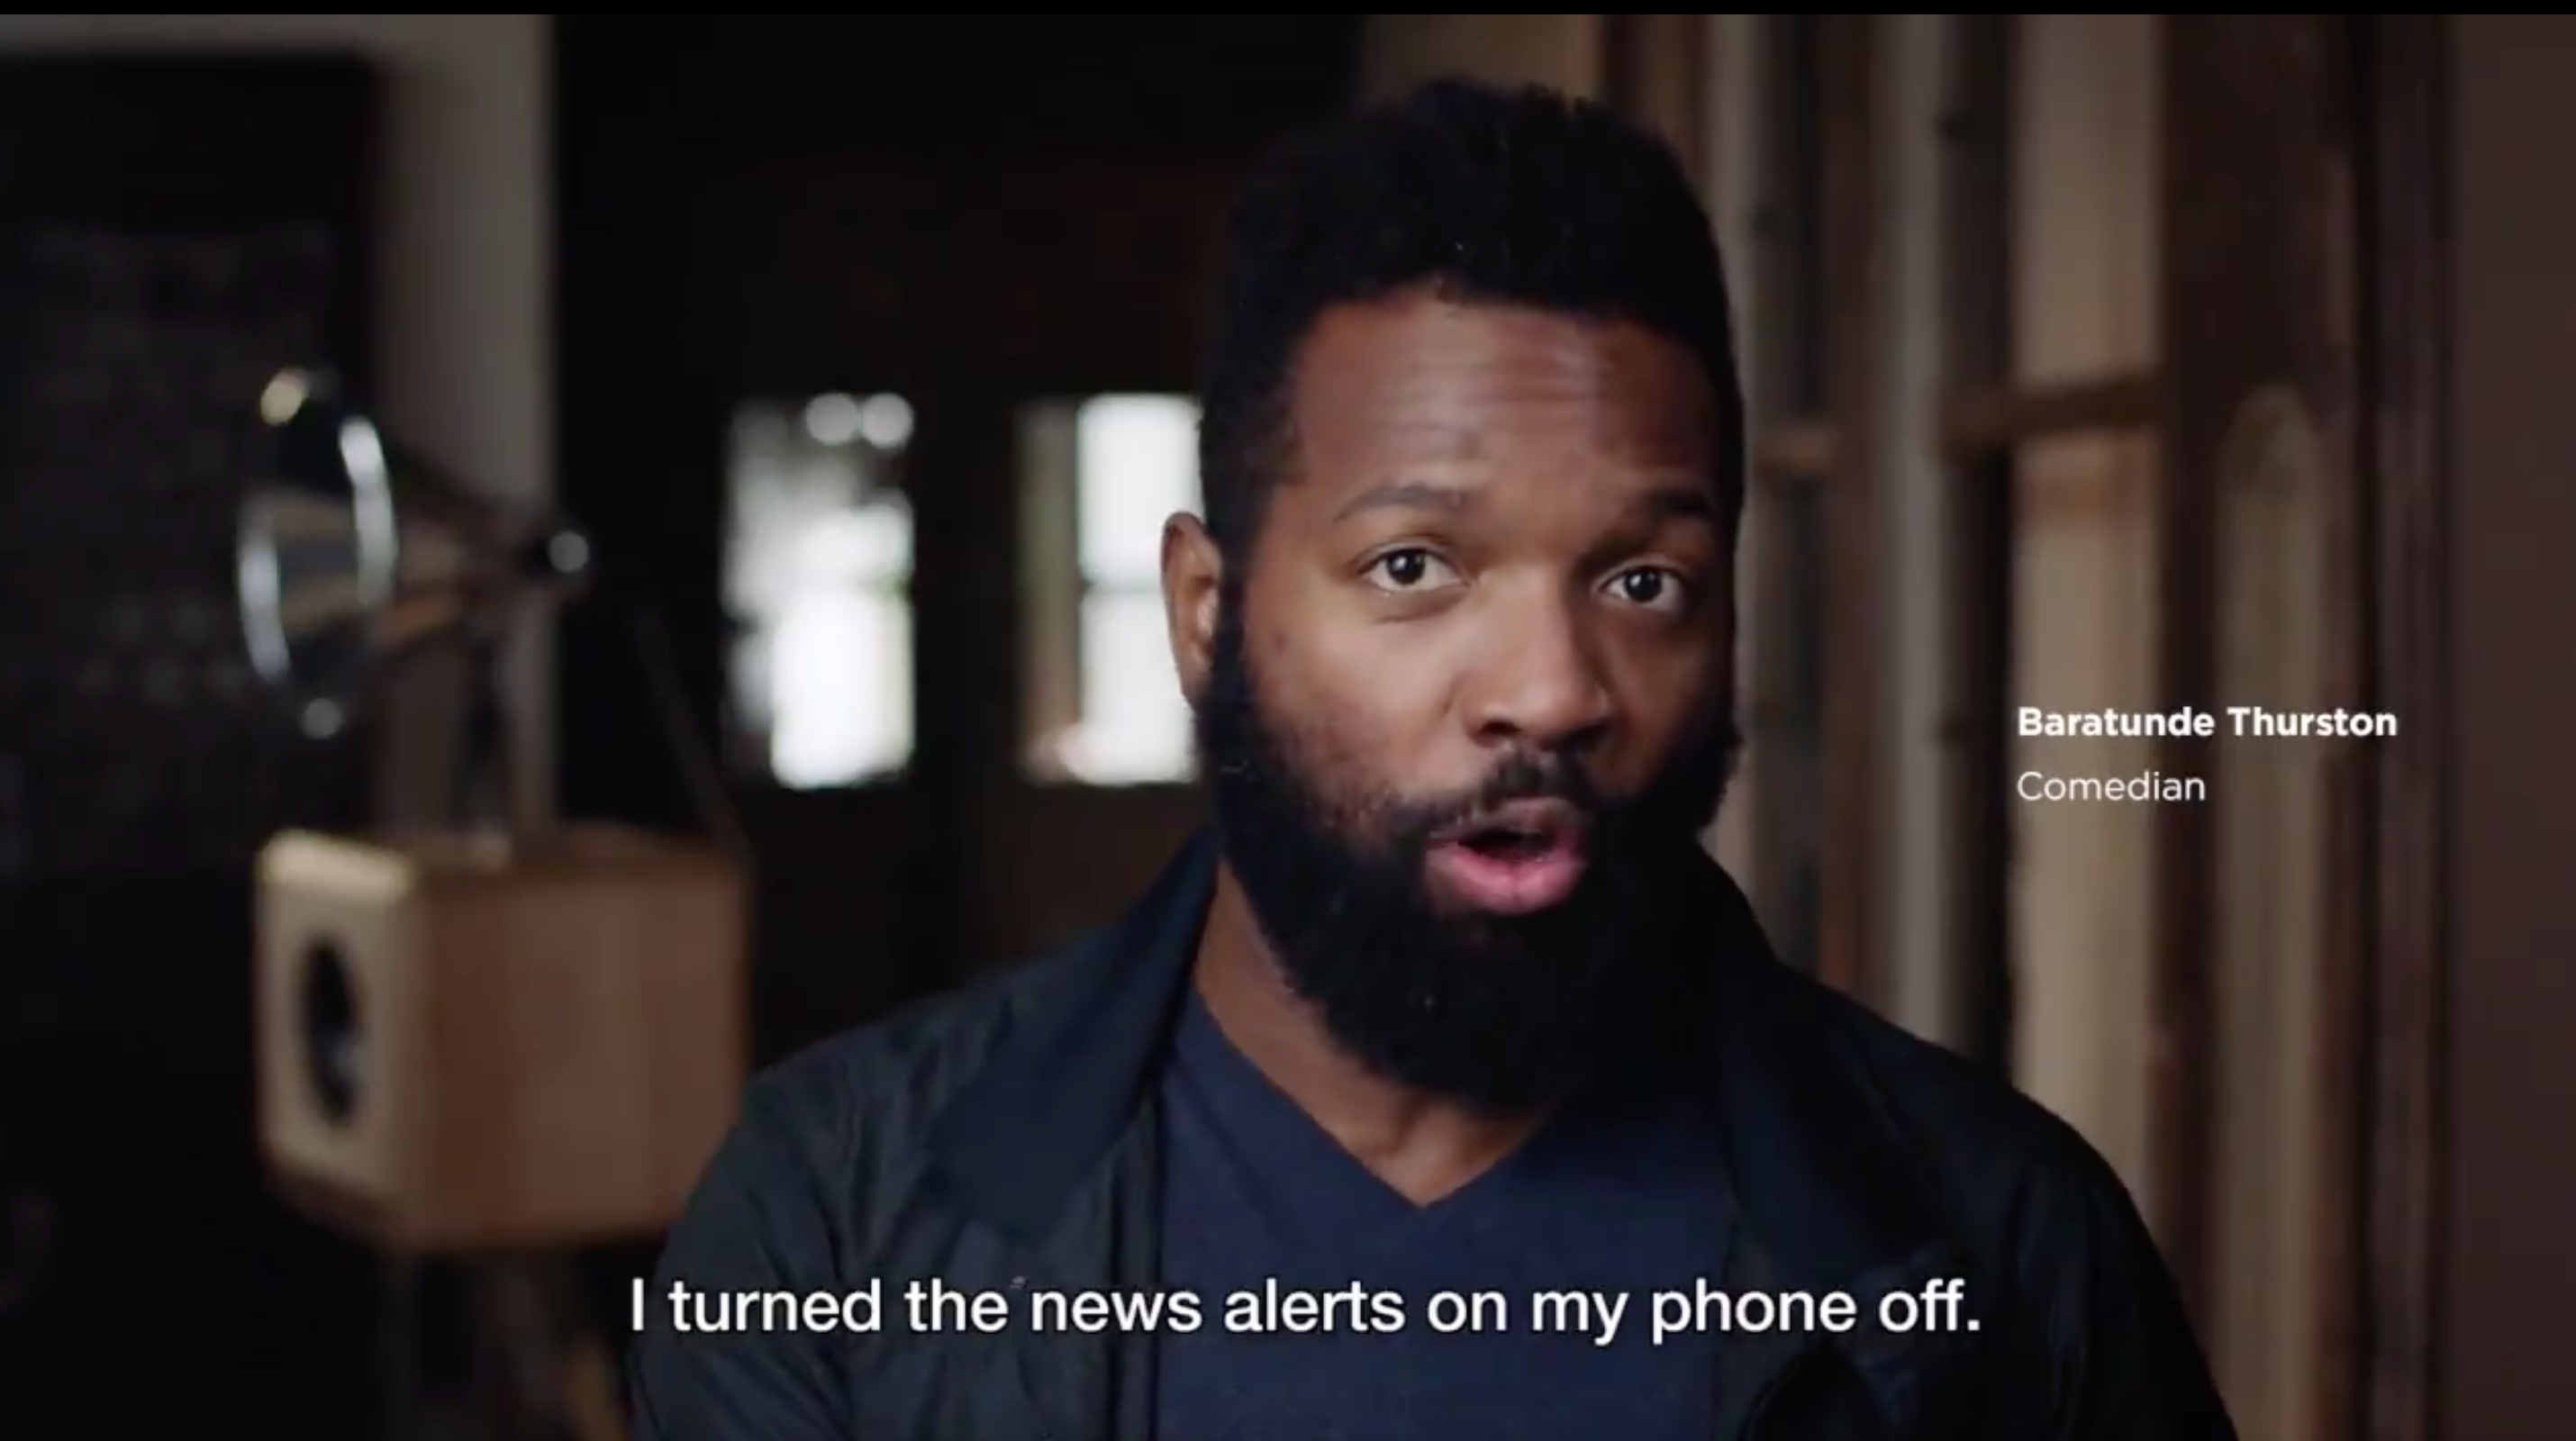 Baratunde Thurston in The Correspondent launch video